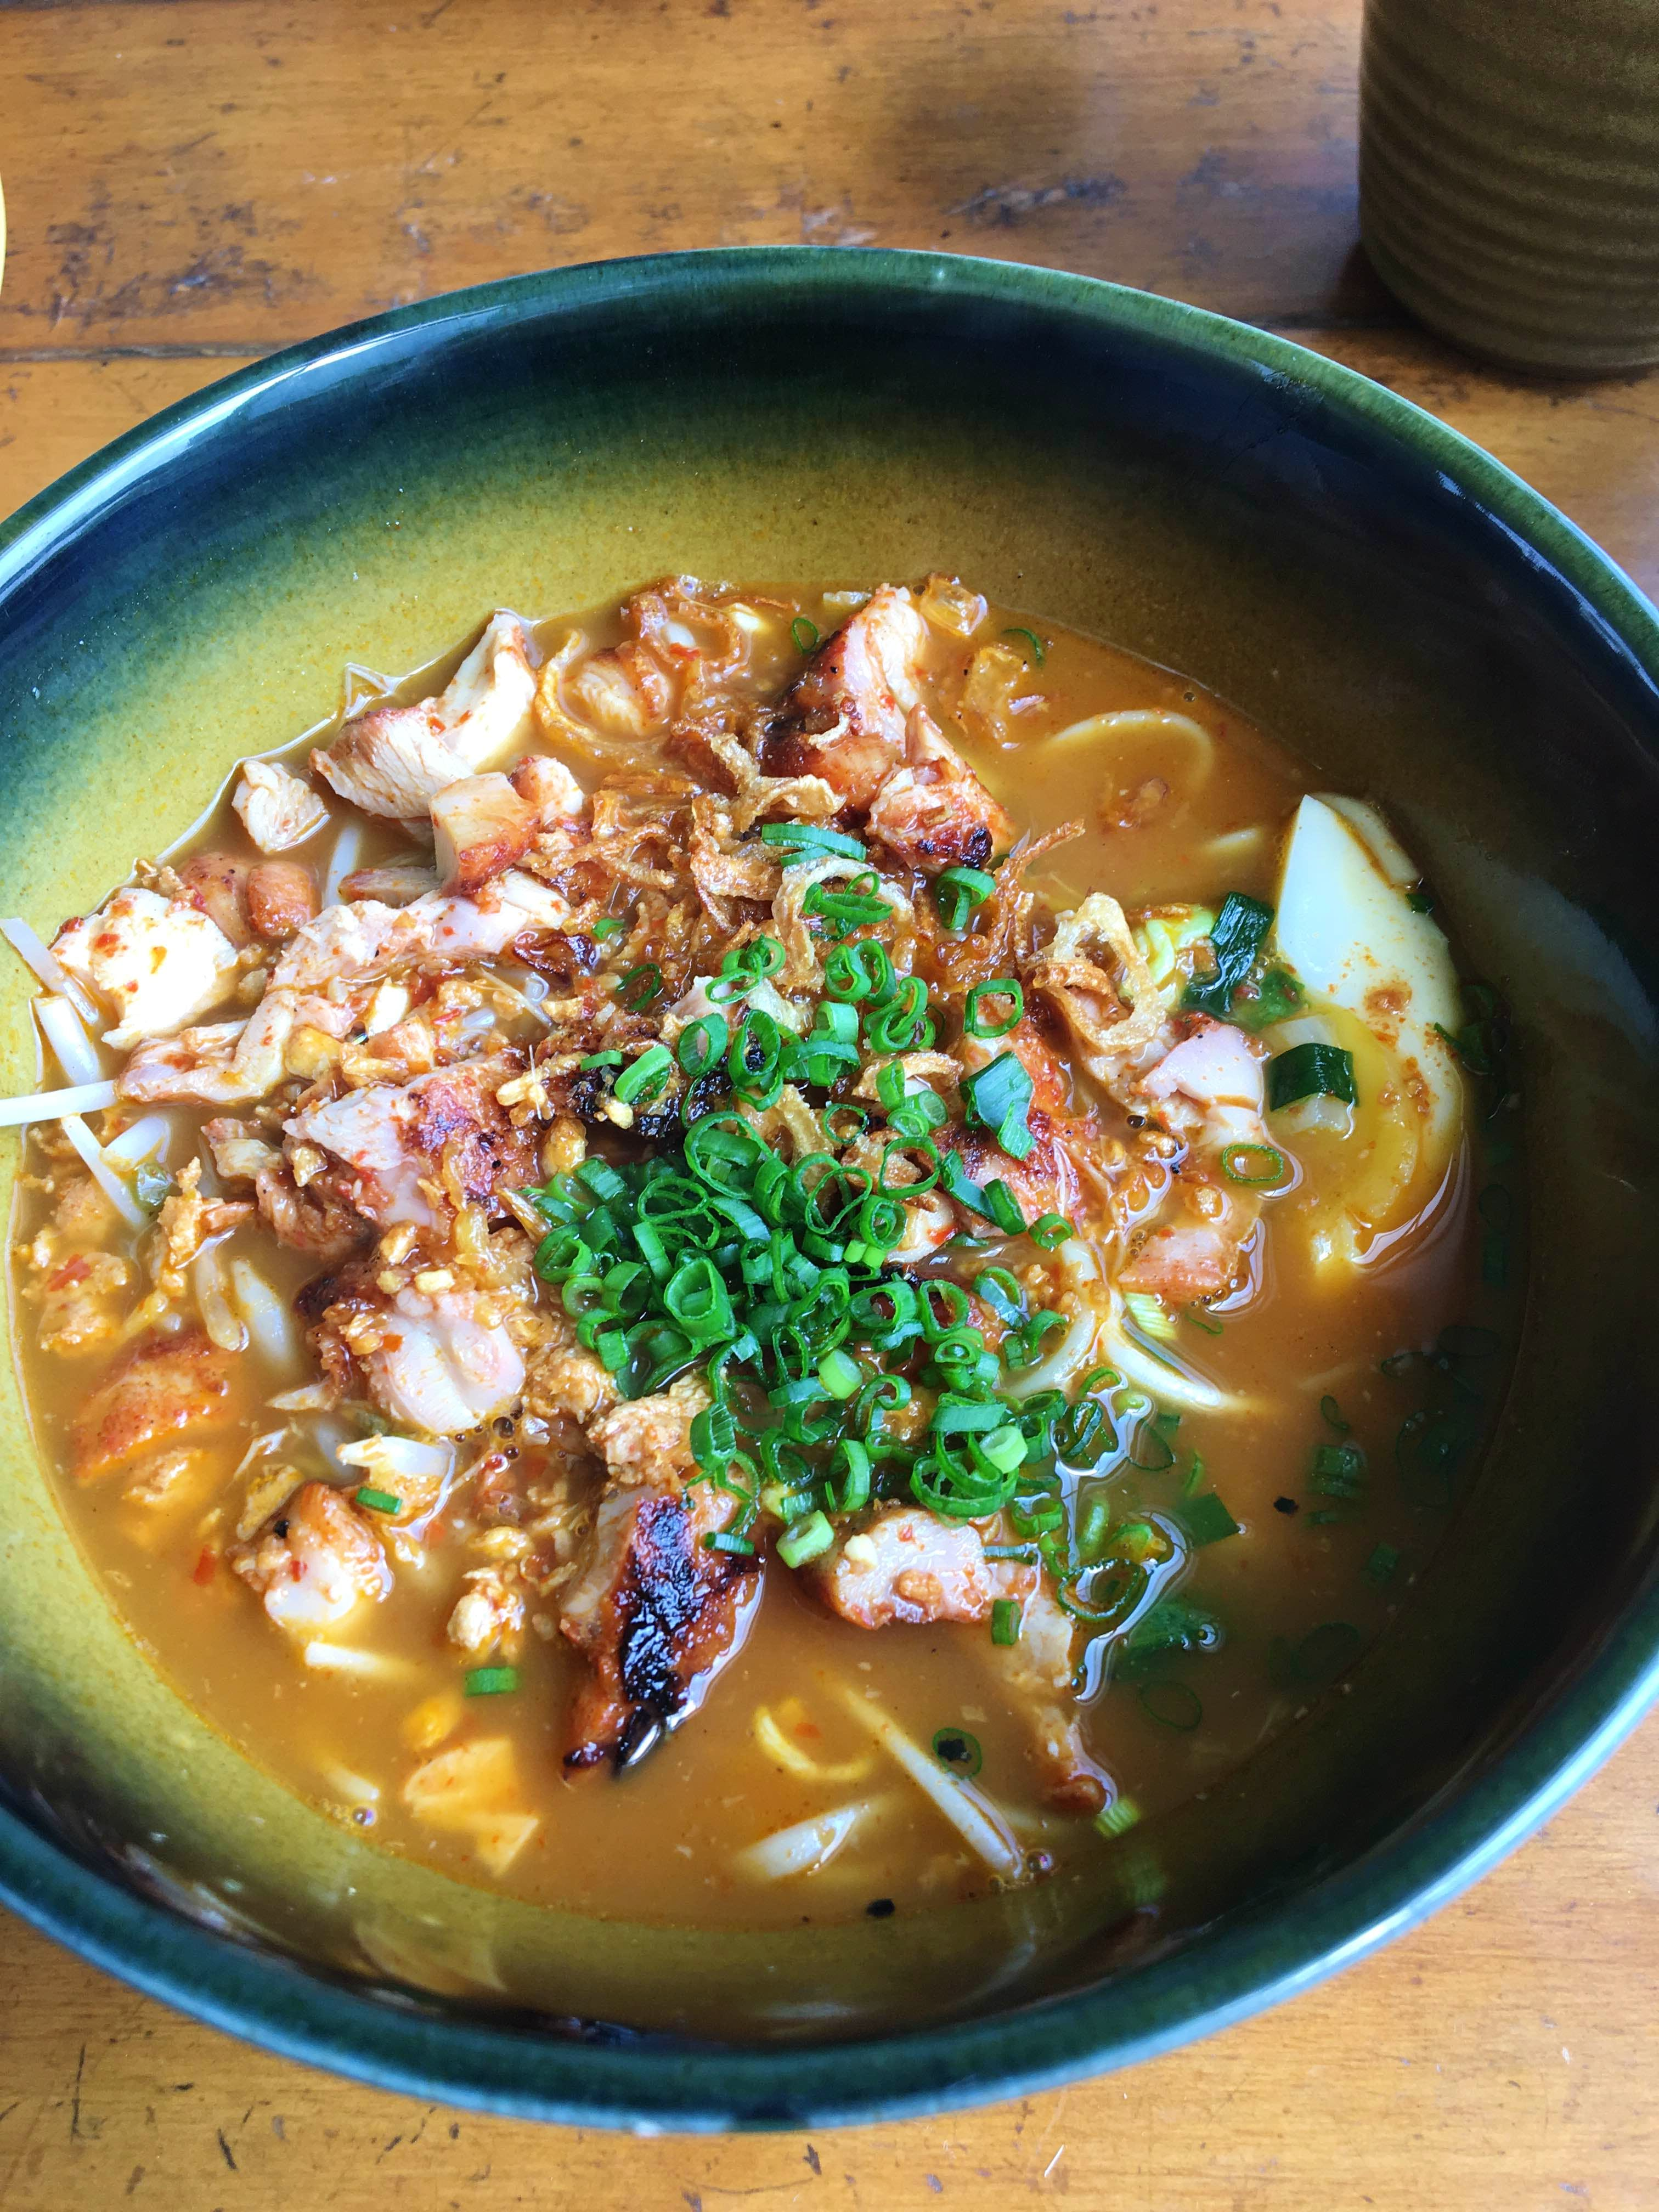 Dish,Food,Cuisine,Ingredient,Haejangguk,Meat,Soup,Produce,Asian soups,Soto mie